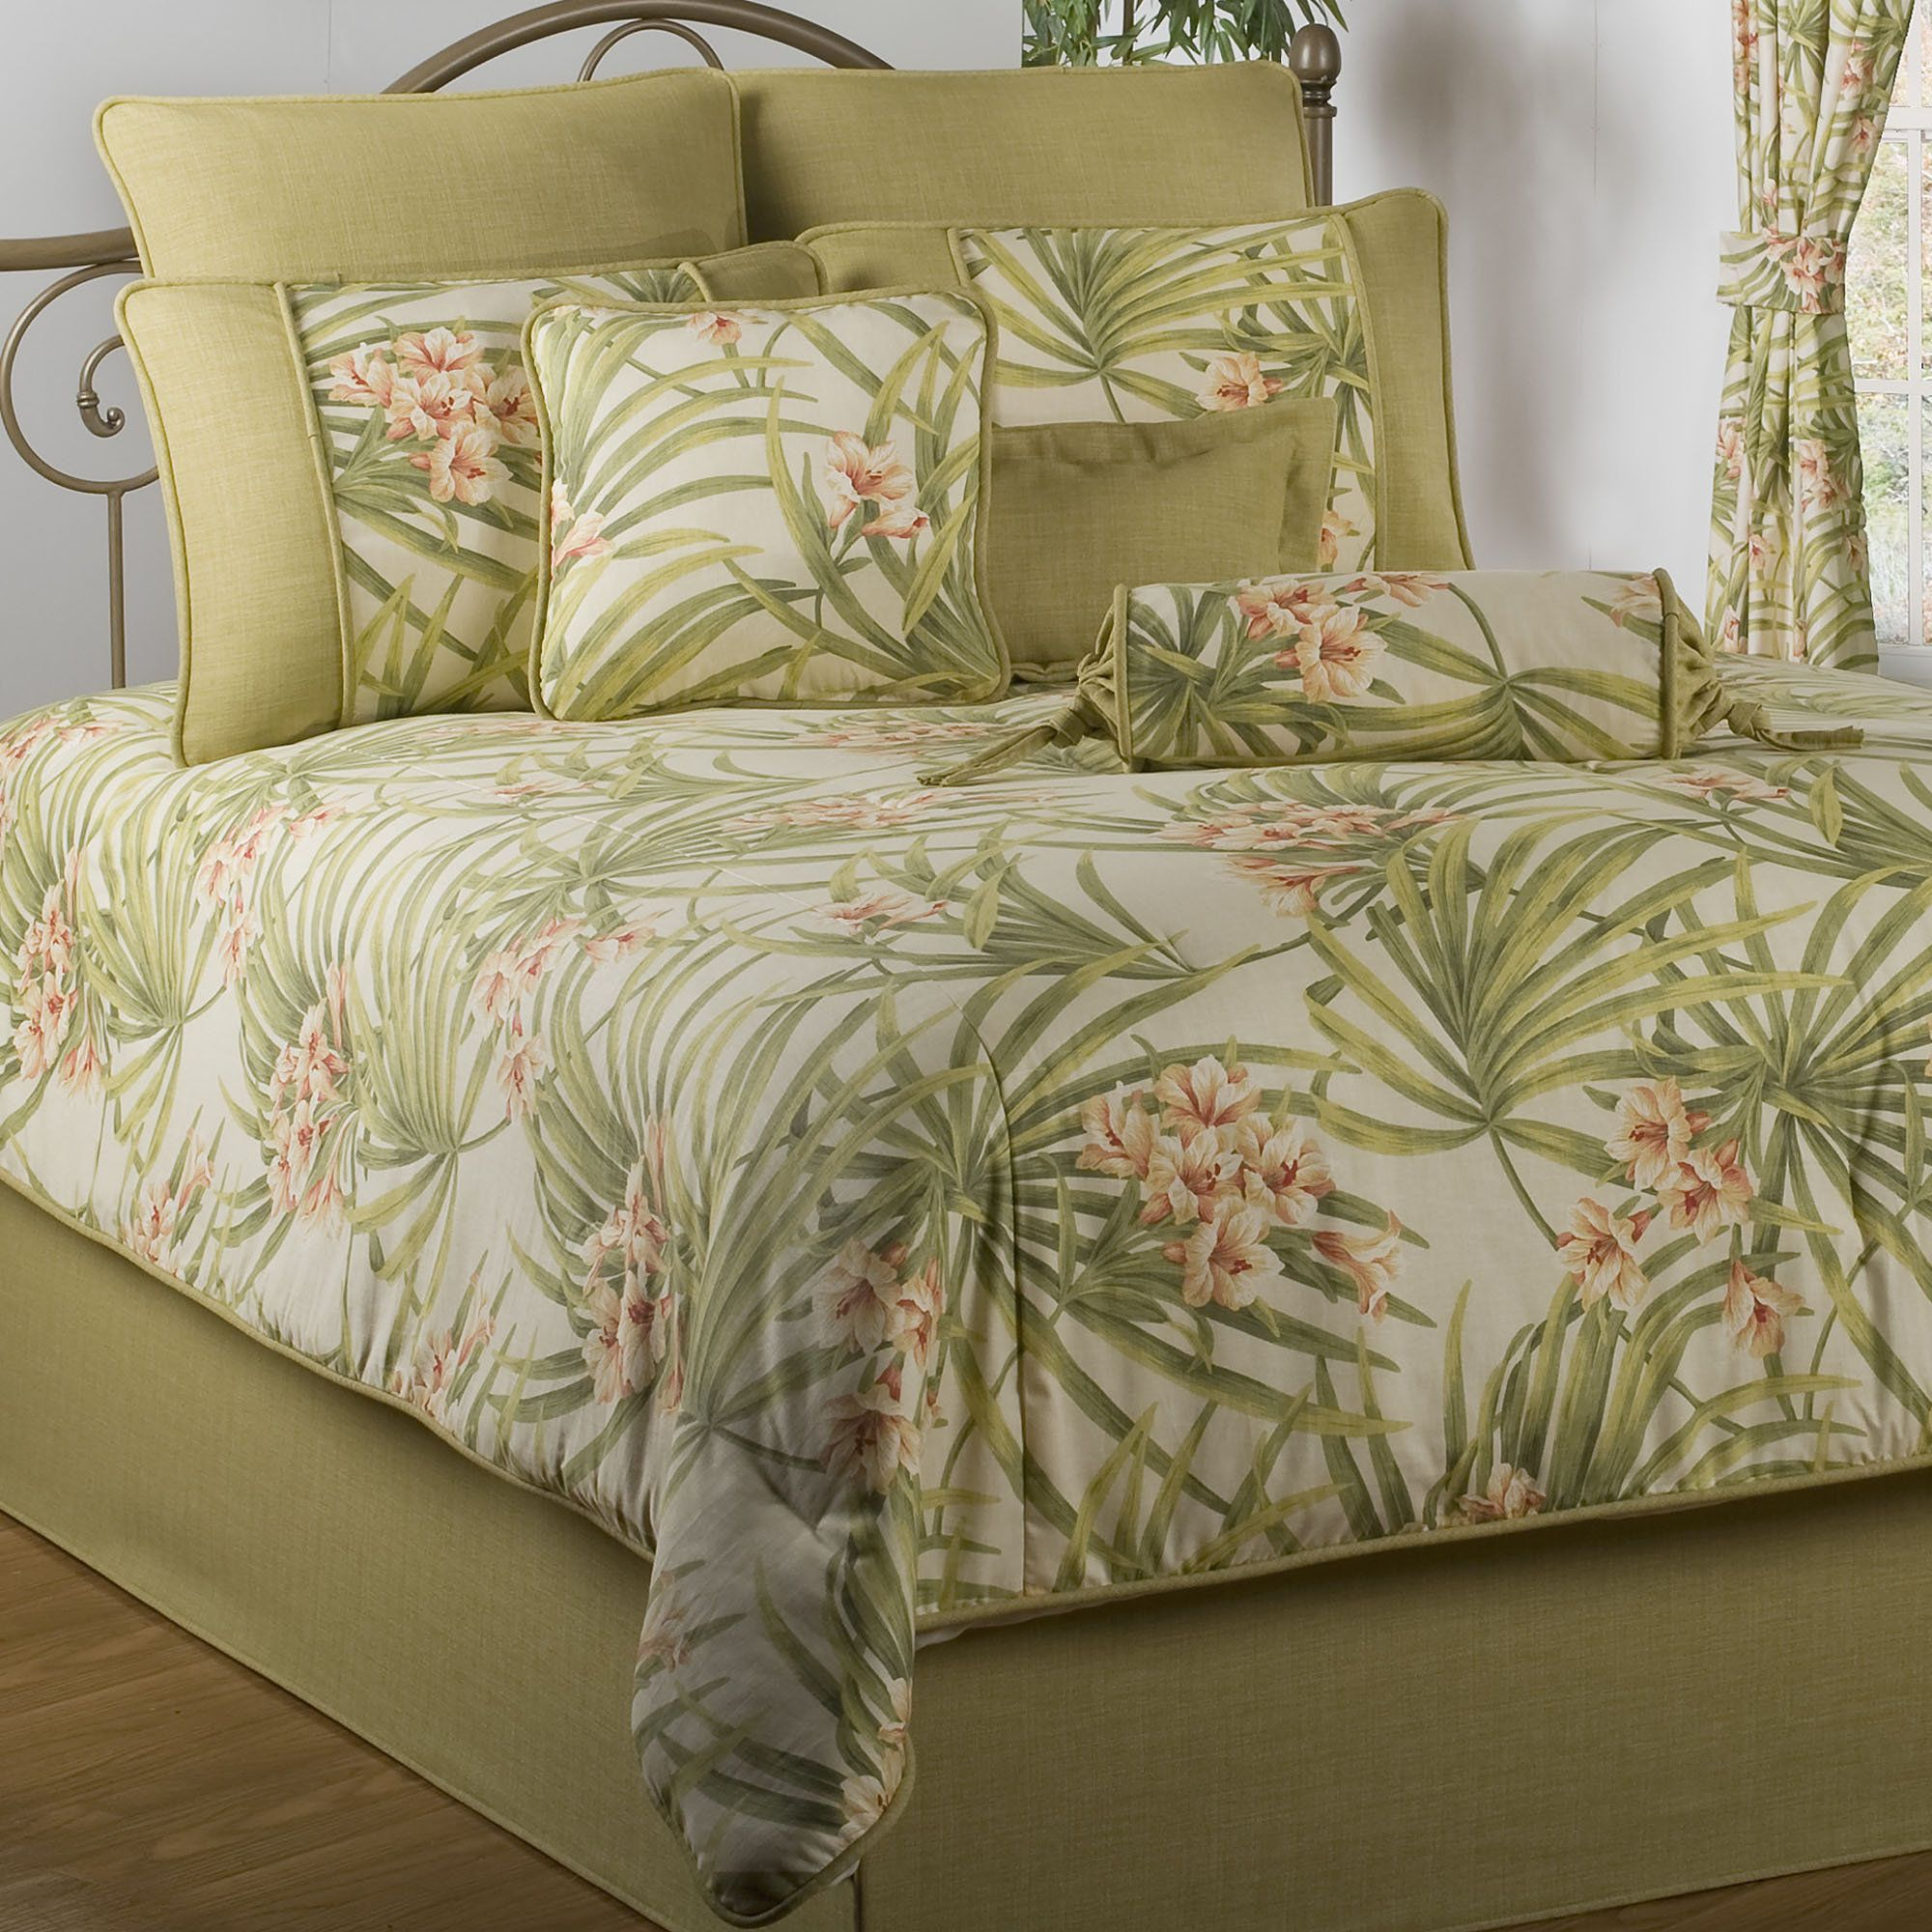 comforter review collection reviews queen size set sleep for on white bedding tree number green down piece chezmoi